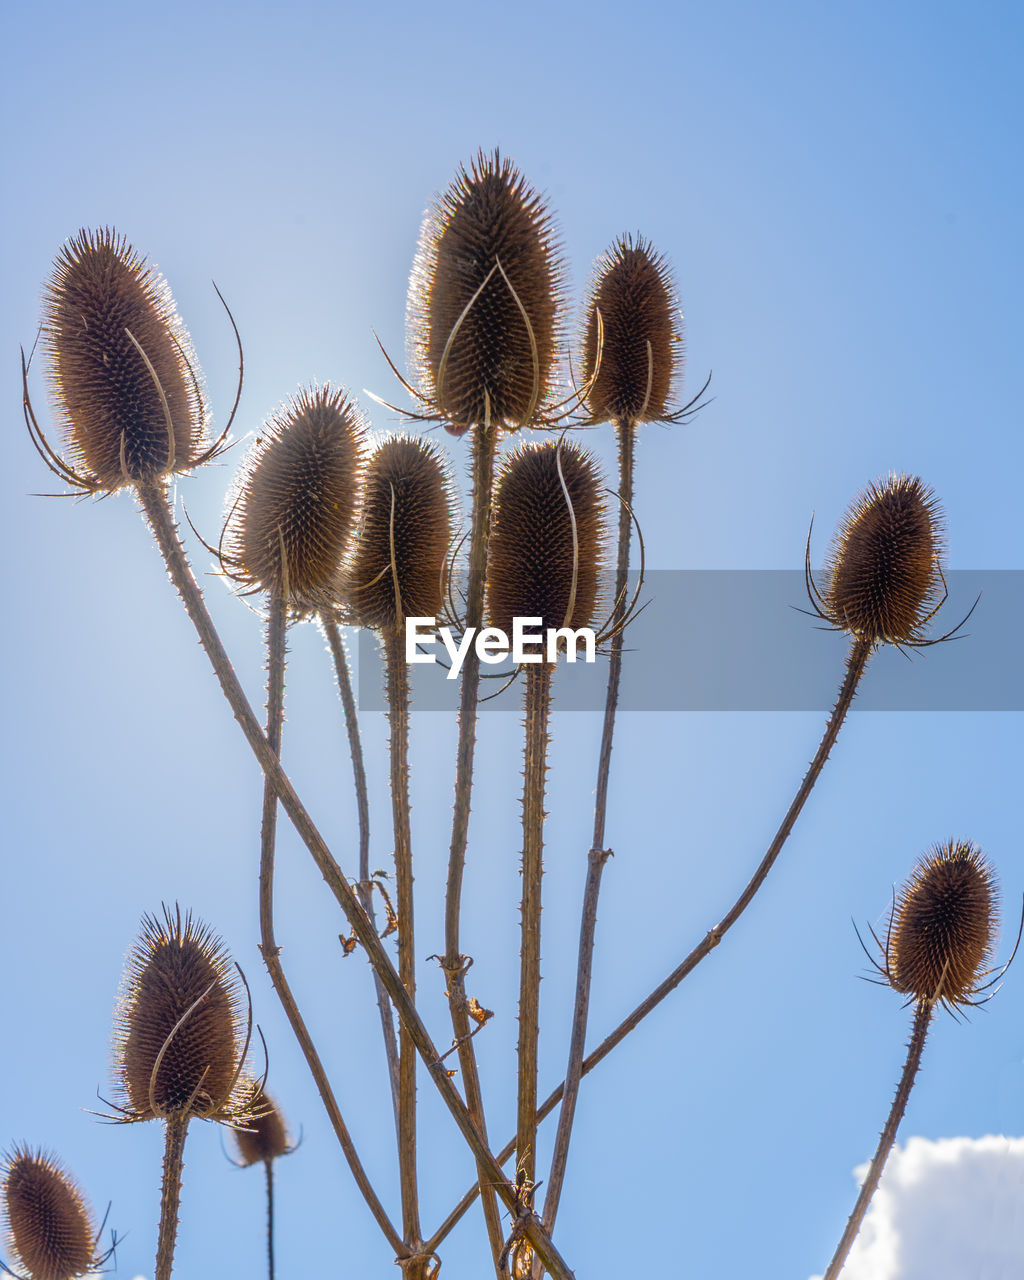 sky, plant, low angle view, nature, growth, no people, beauty in nature, flower, flowering plant, clear sky, day, close-up, fragility, freshness, plant stem, vulnerability, sunlight, tranquility, focus on foreground, brown, outdoors, softness, spiky